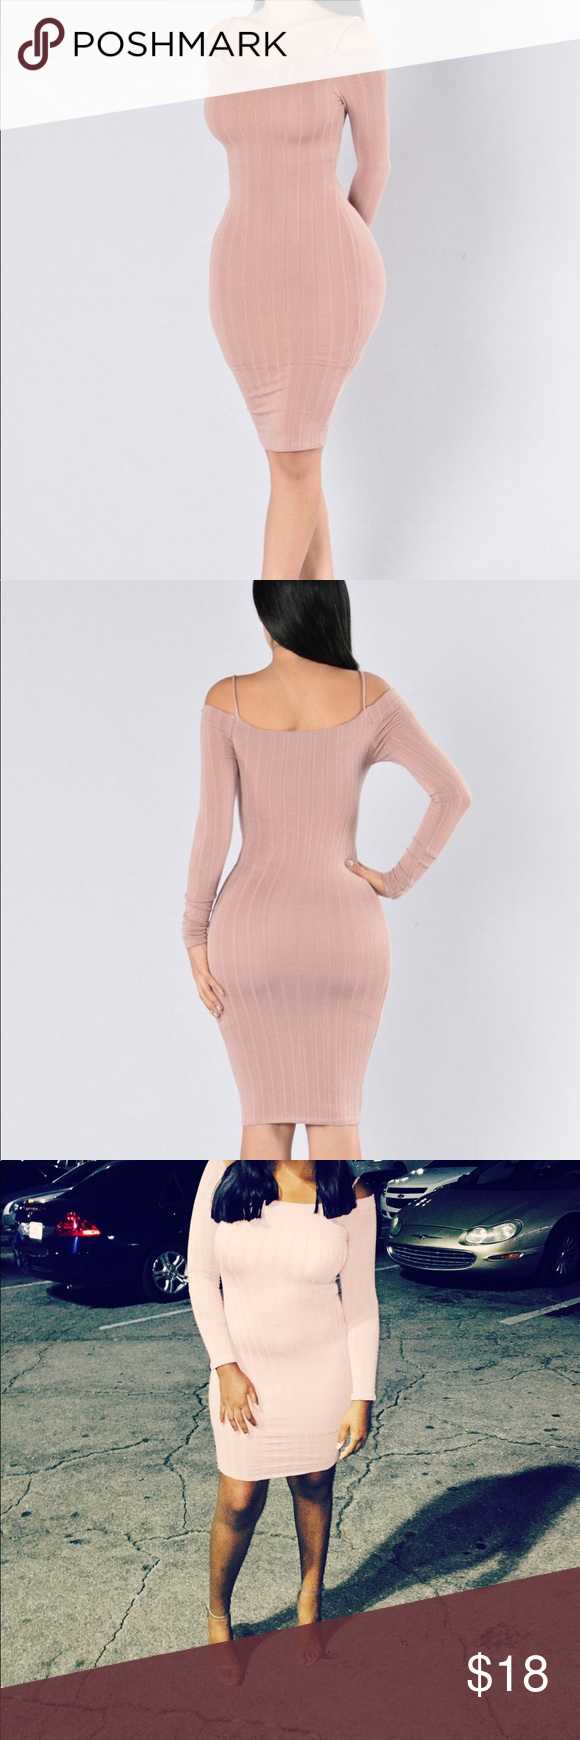 306a63528bdb No One Like You Dress - Mauve - Large Worn Once Available in Mauve Off the  shoulder Long Sleeve Ribbed Midi Length 95% Rayon